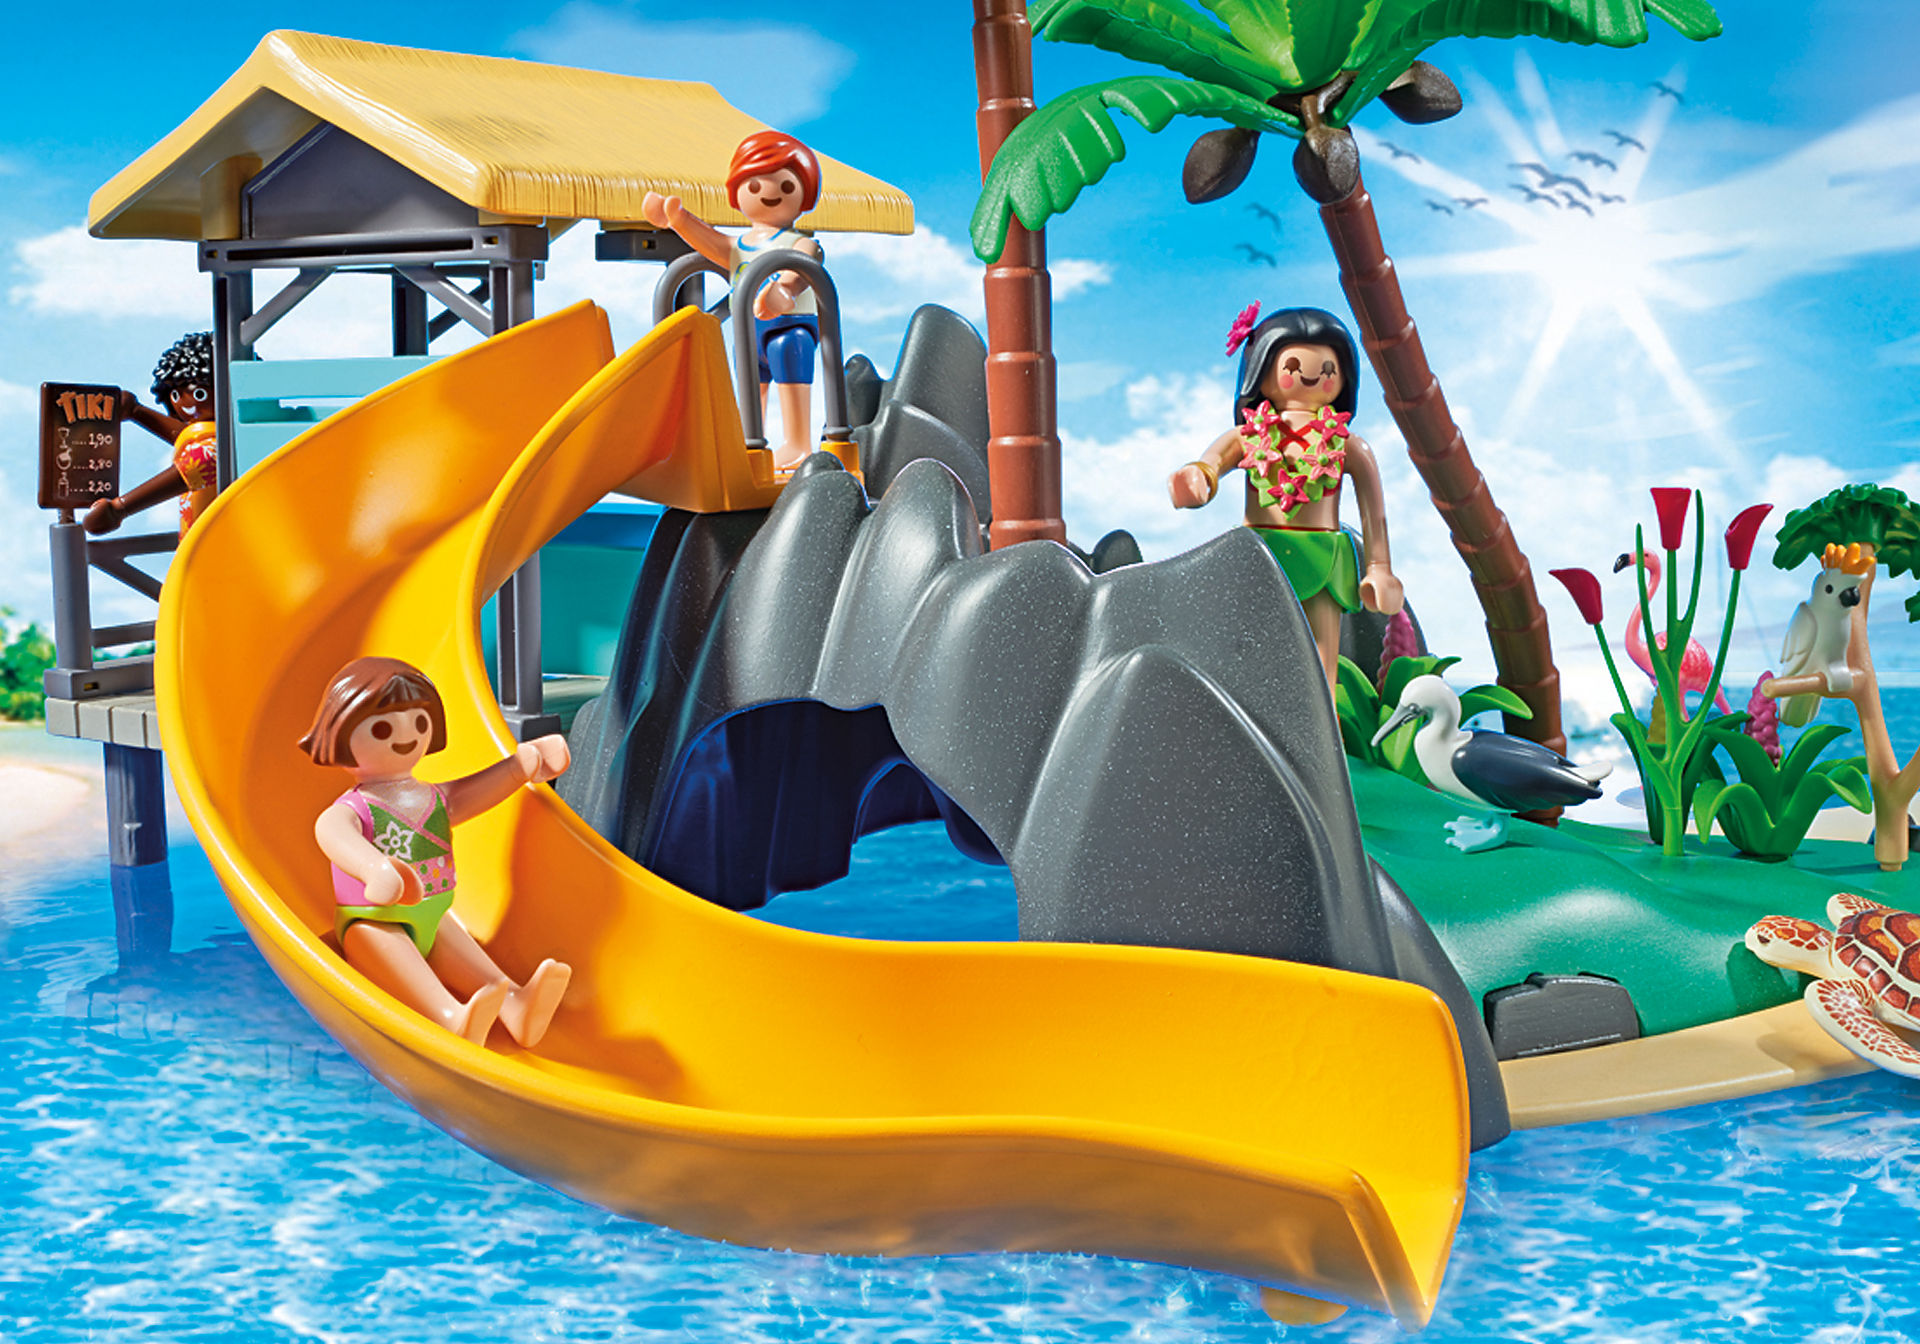 http://media.playmobil.com/i/playmobil/6979_product_extra4/Island Juice Bar